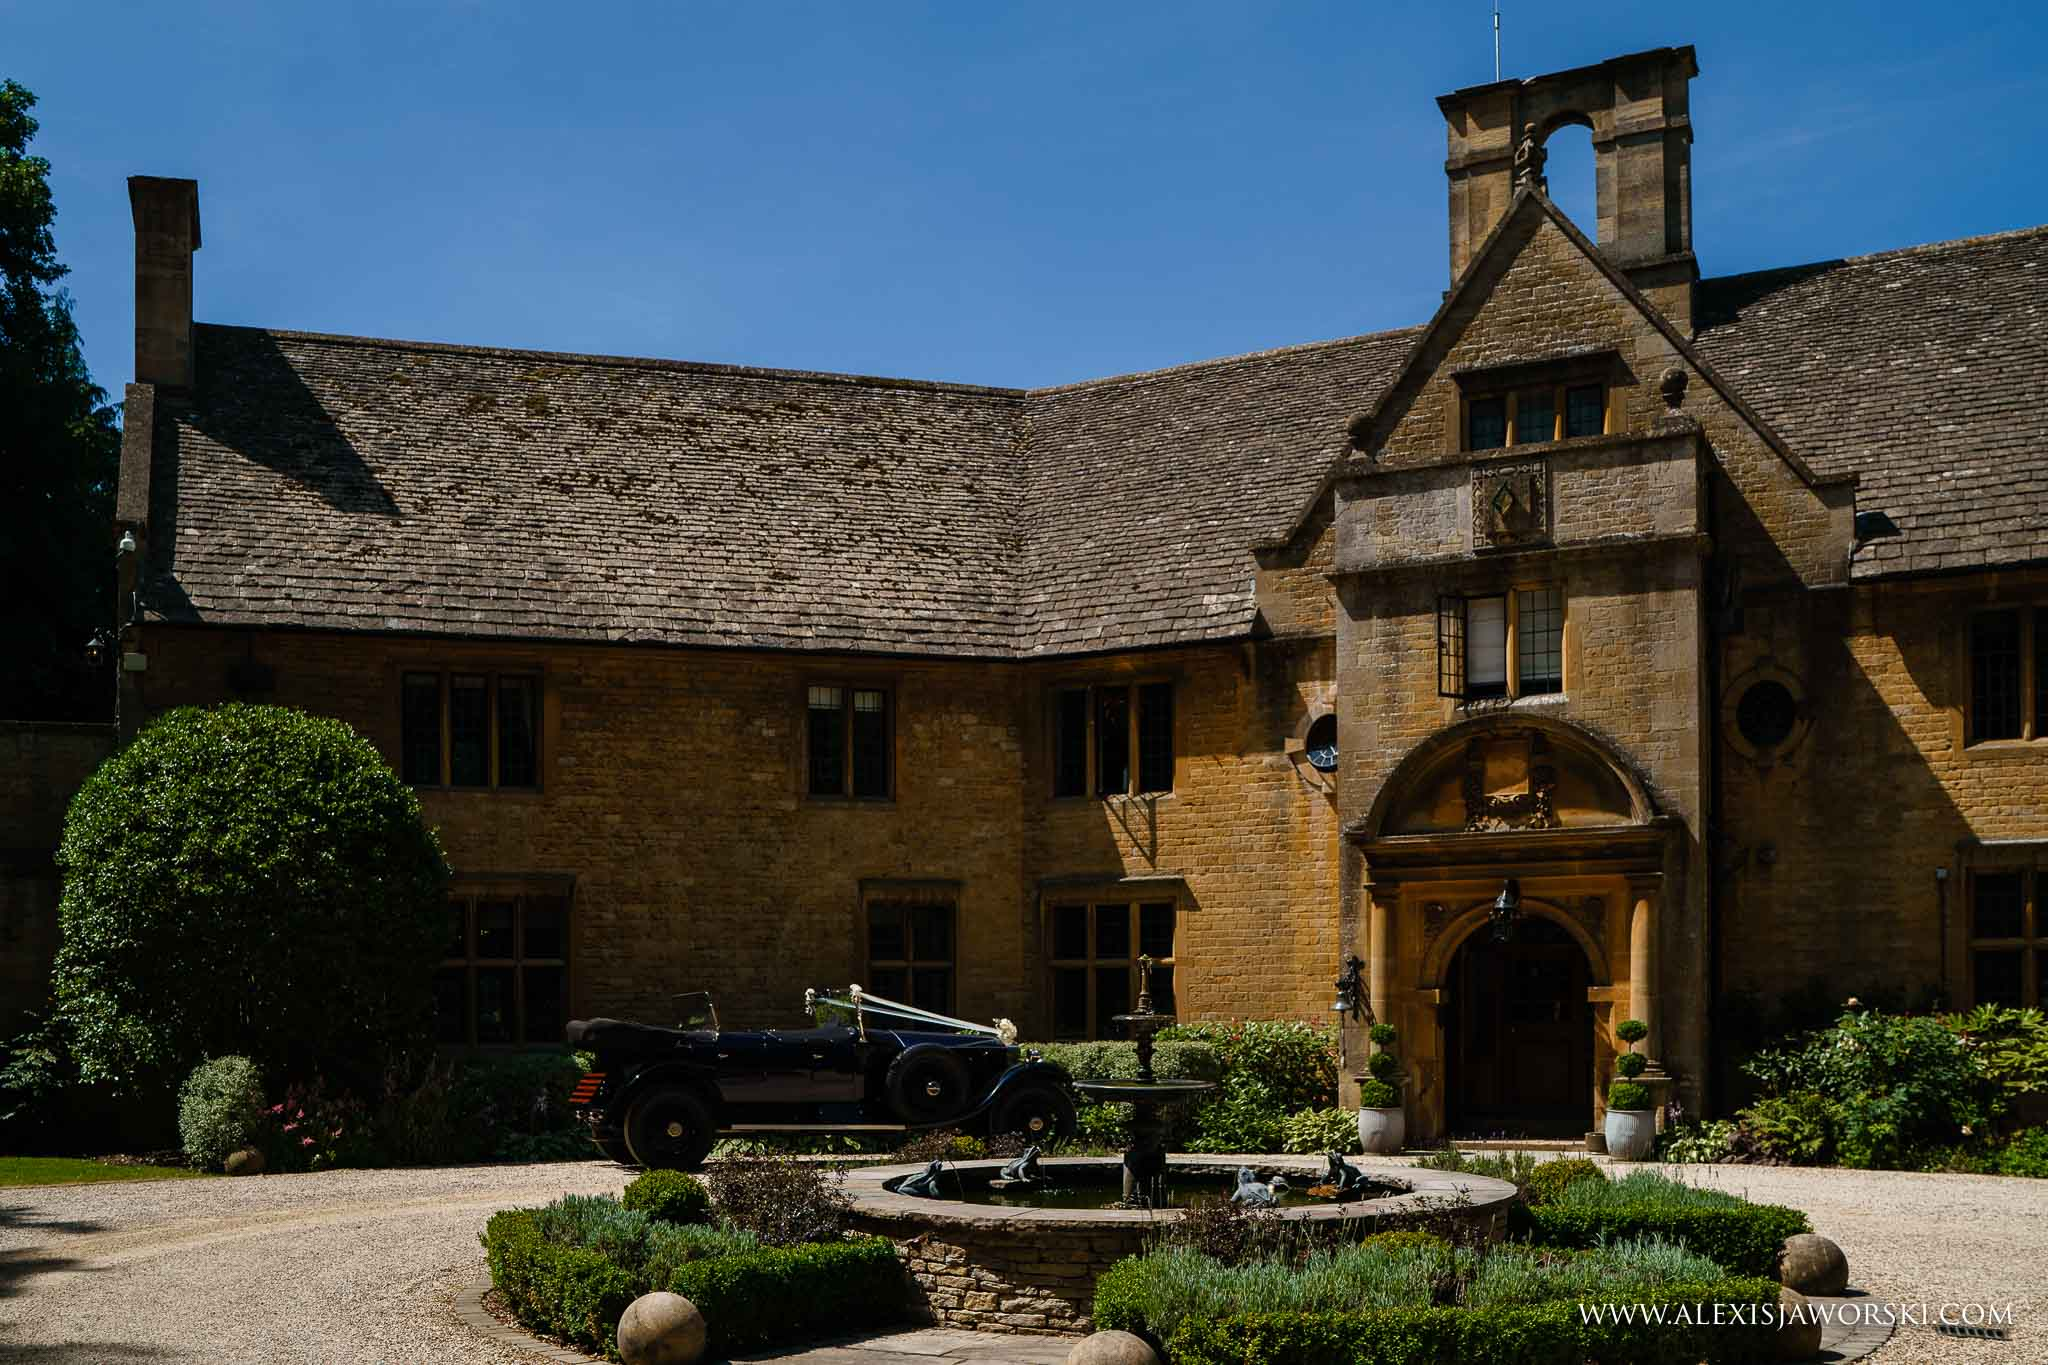 Foxhill Manor venue photo